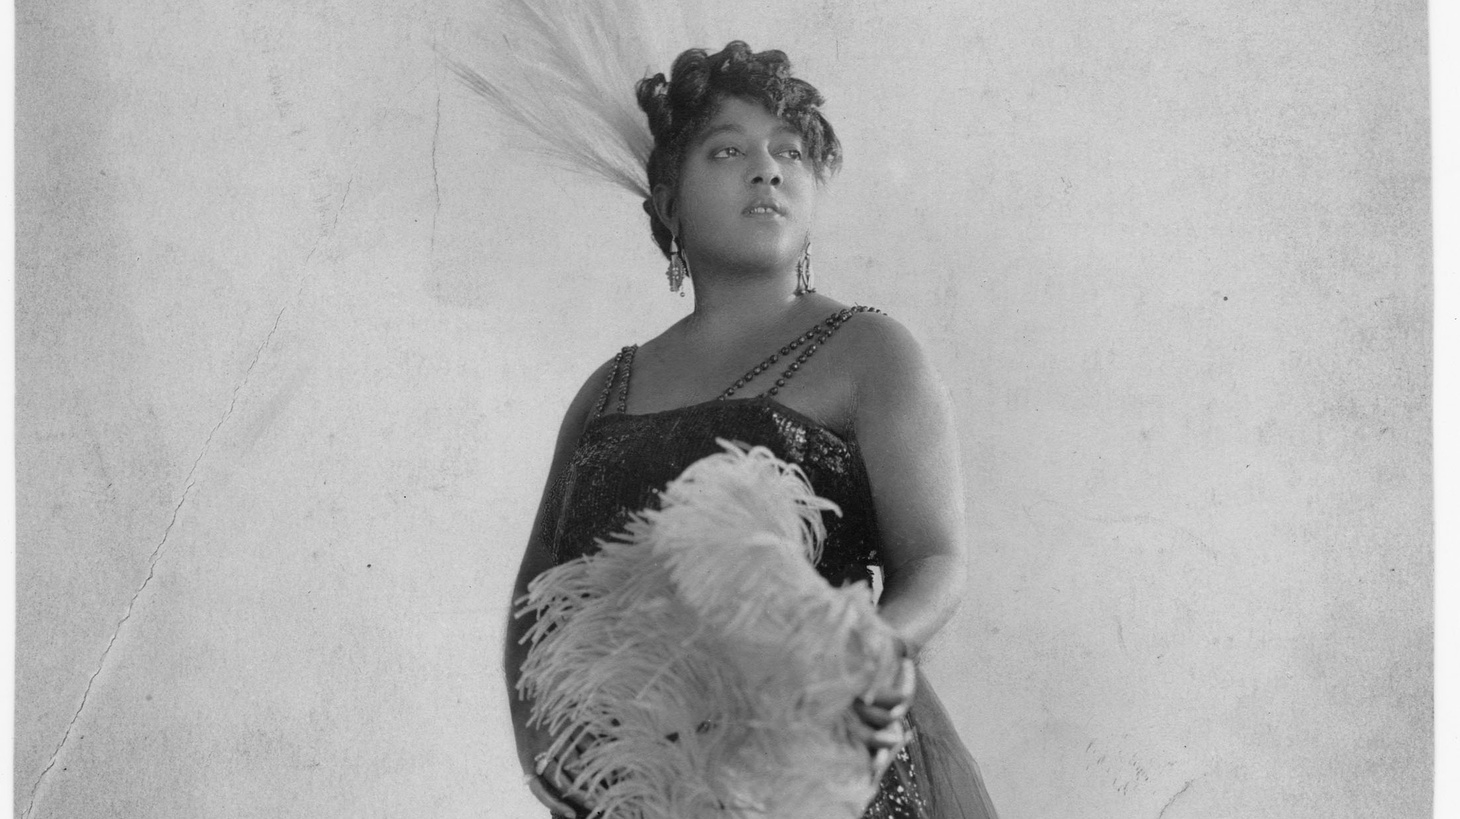 """Mamie Smith's 1920 recording of """"Crazy Blues"""" kicked down a previously locked door for Black female artists and their fans."""